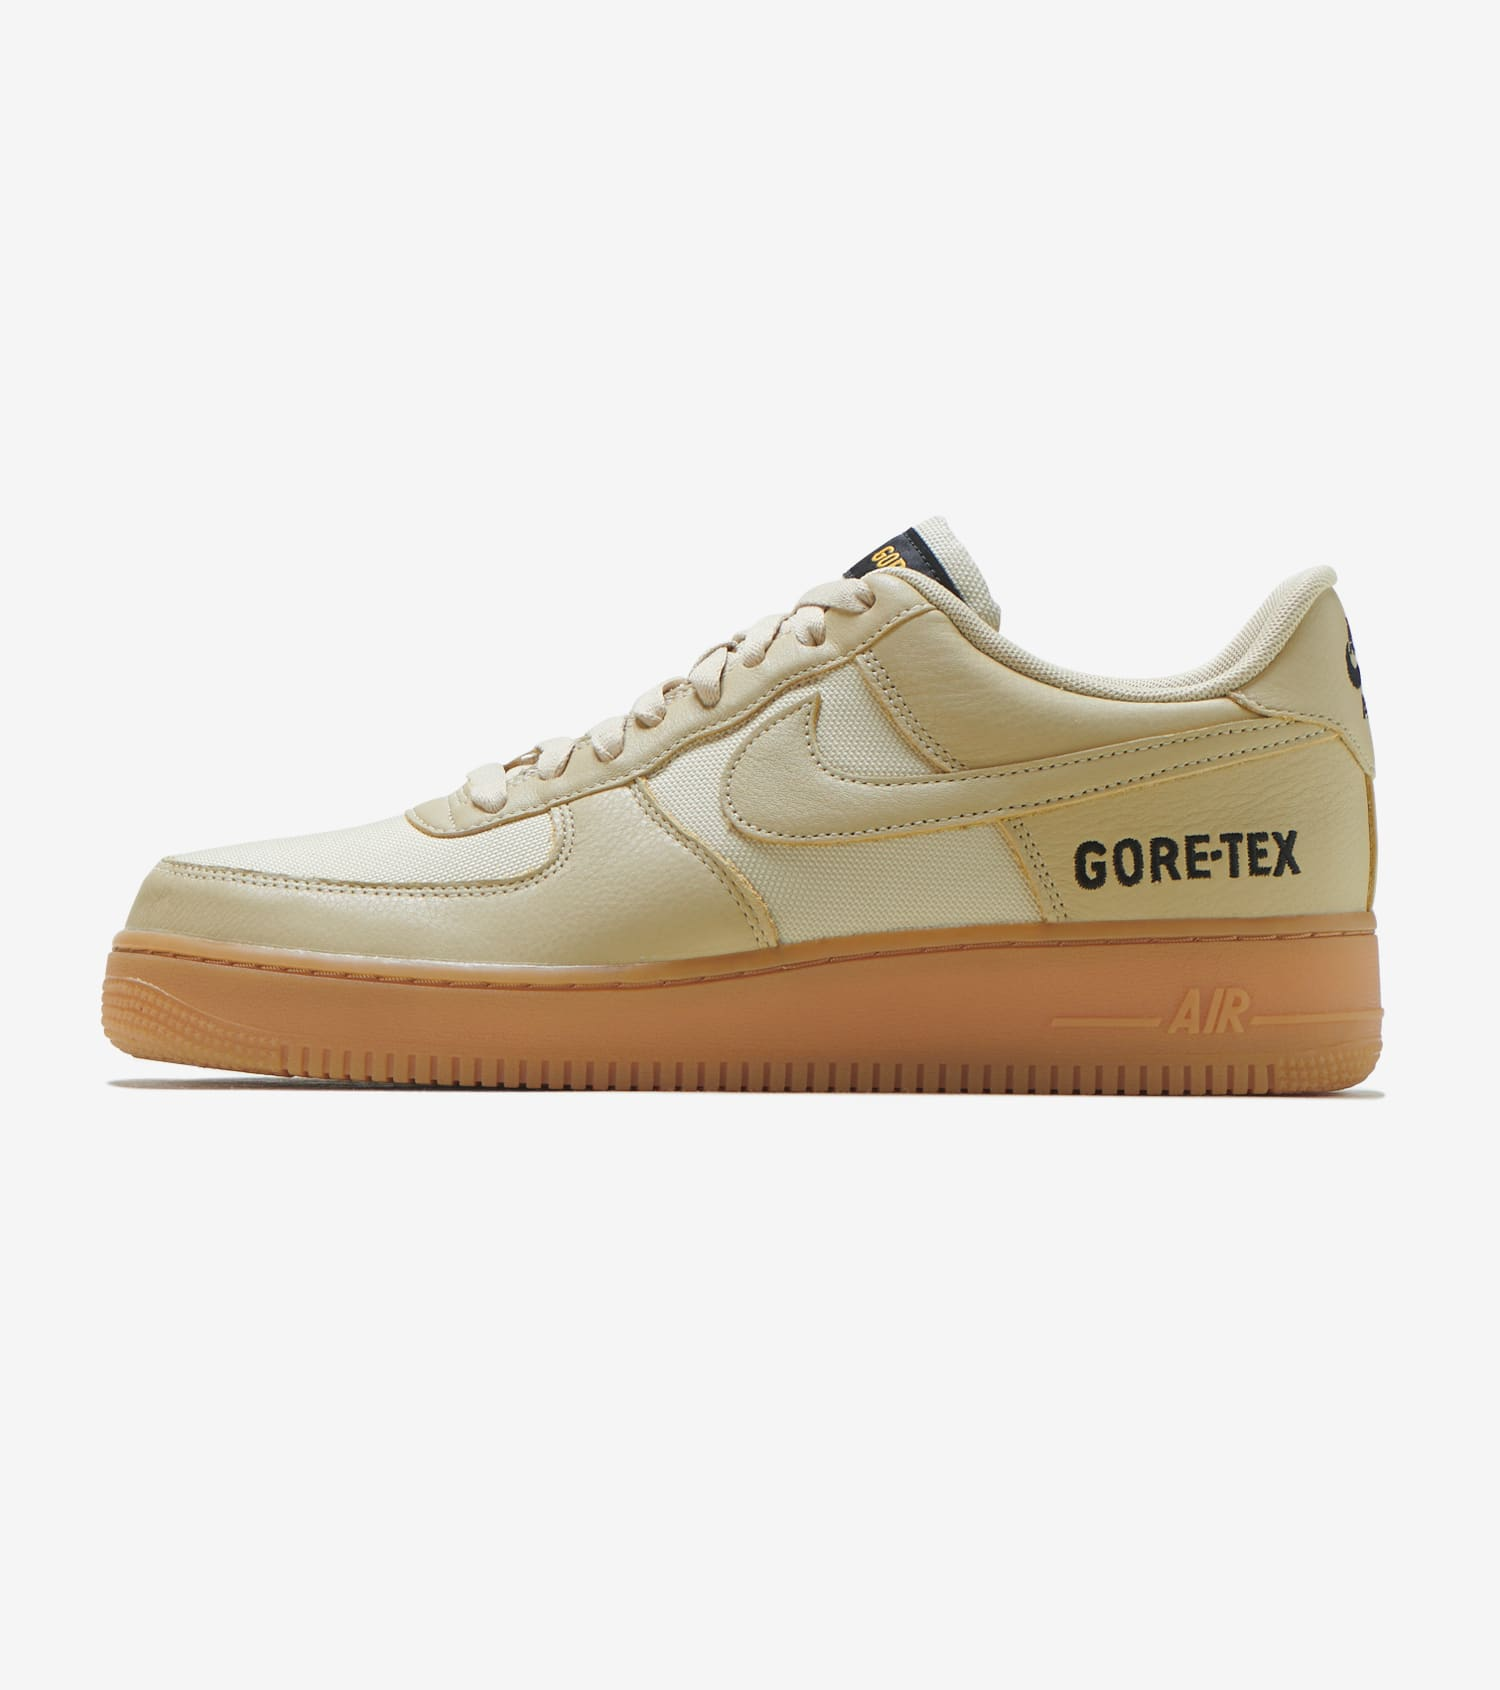 air force 1 gore tex